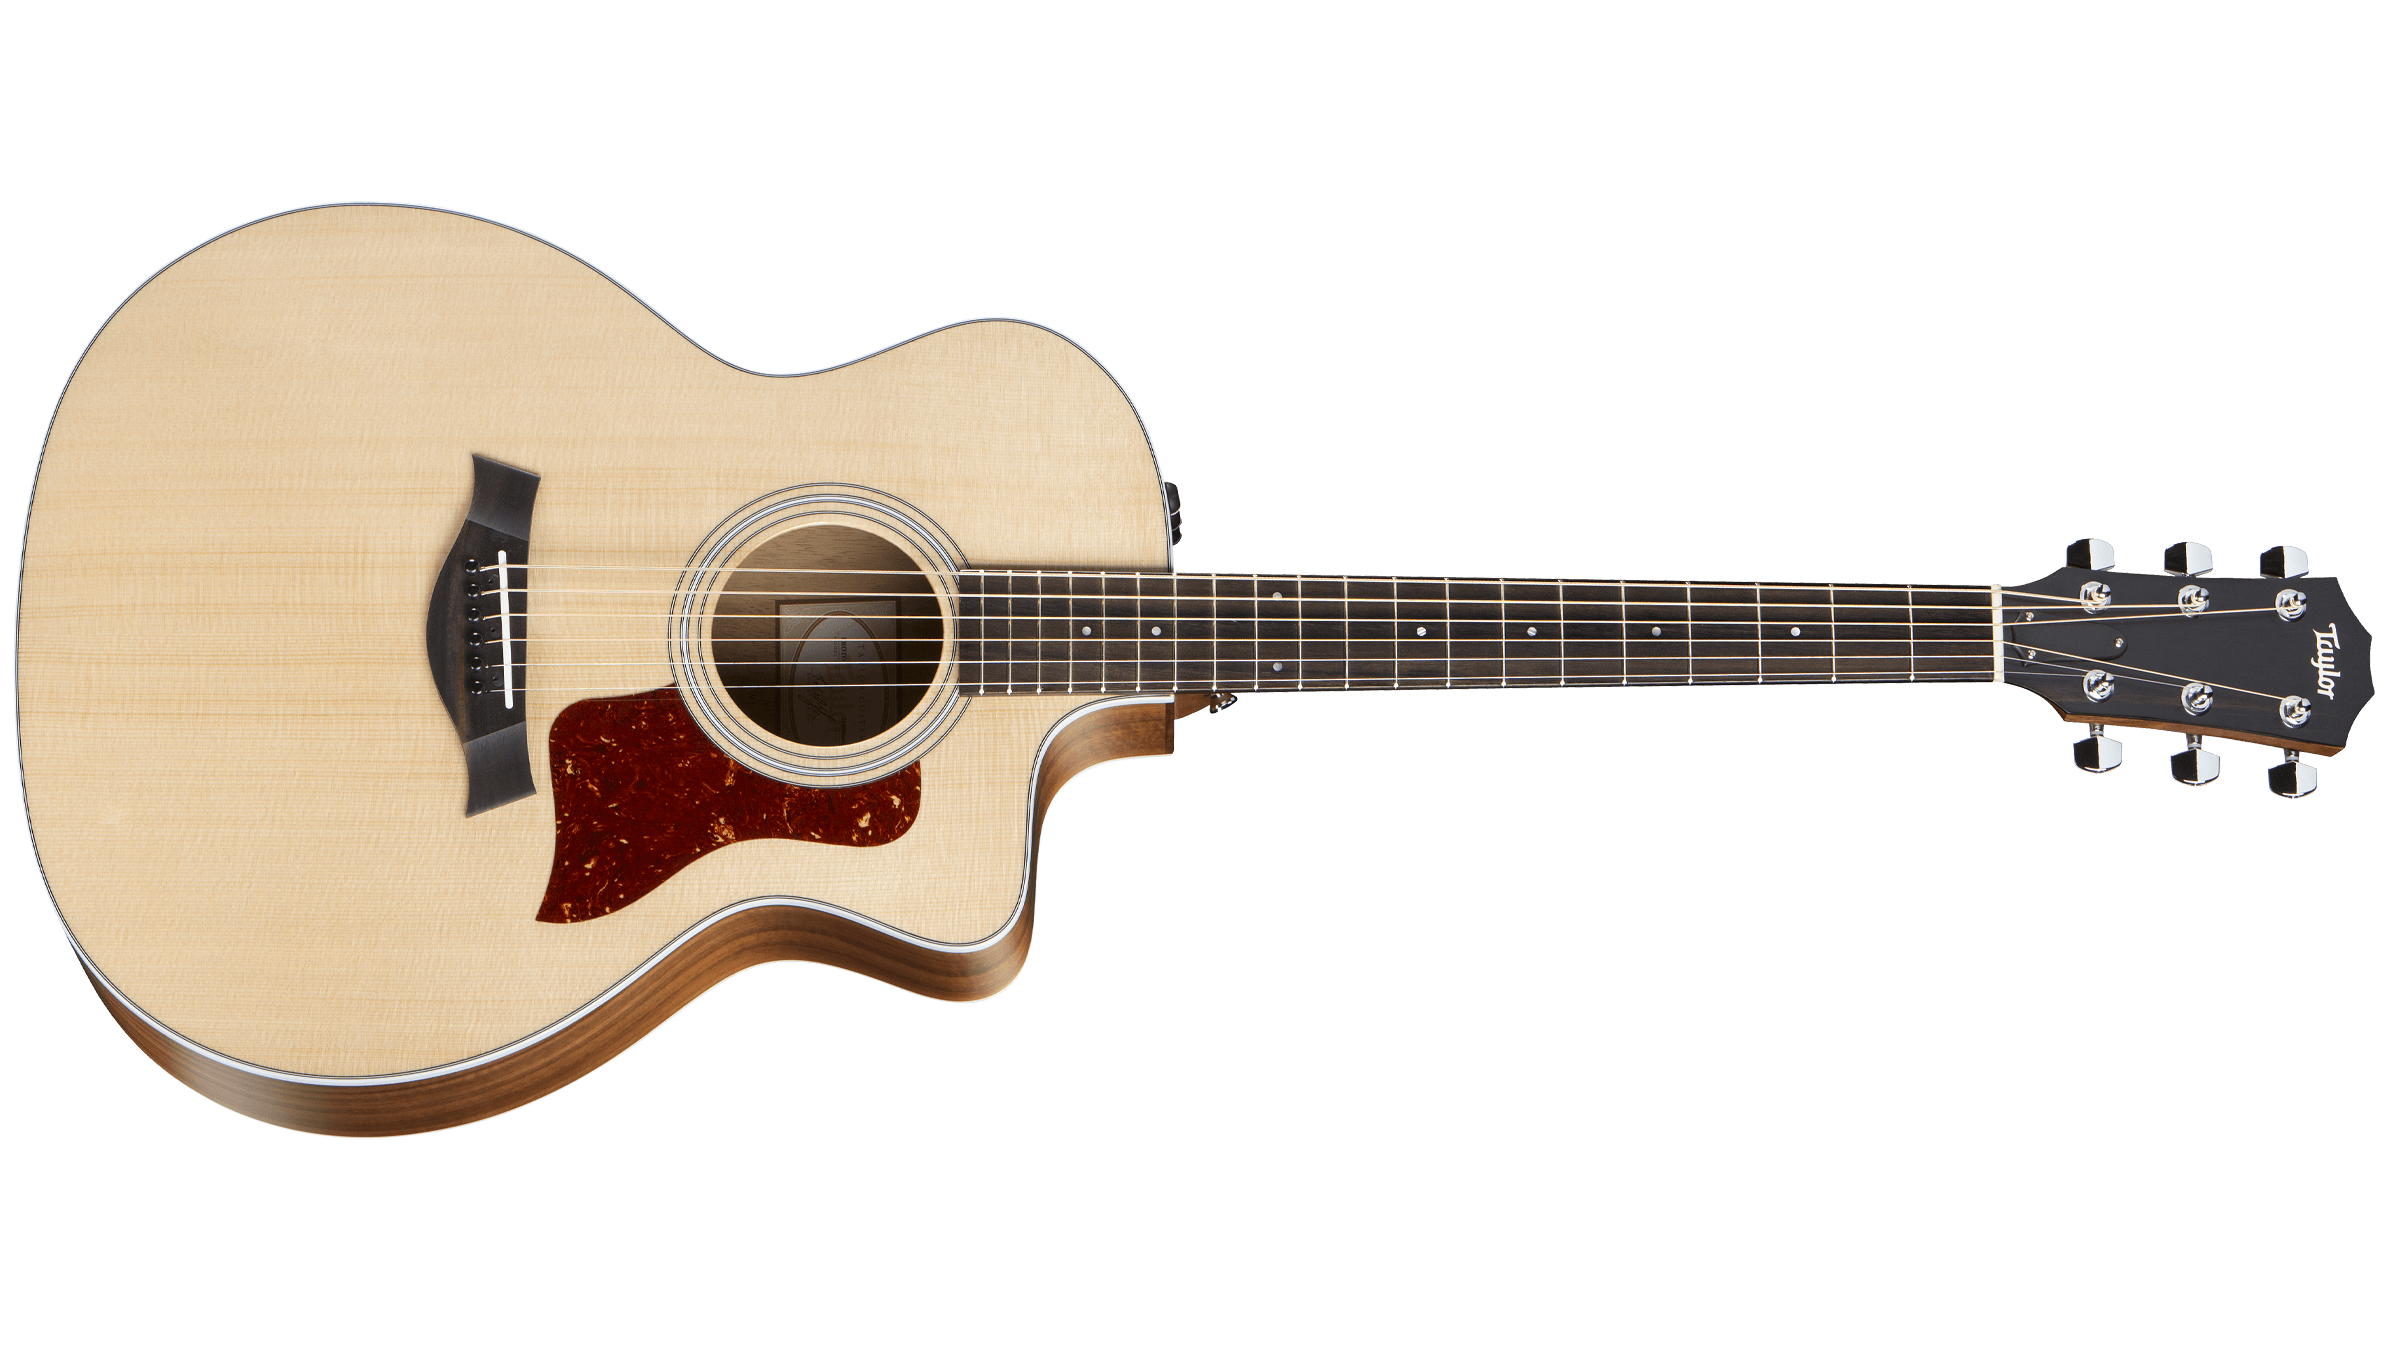 Taylor 214ce 200 Series Electric-Acoustic Guitar - Best Acoustic Guitars (From $500 to $1,000)